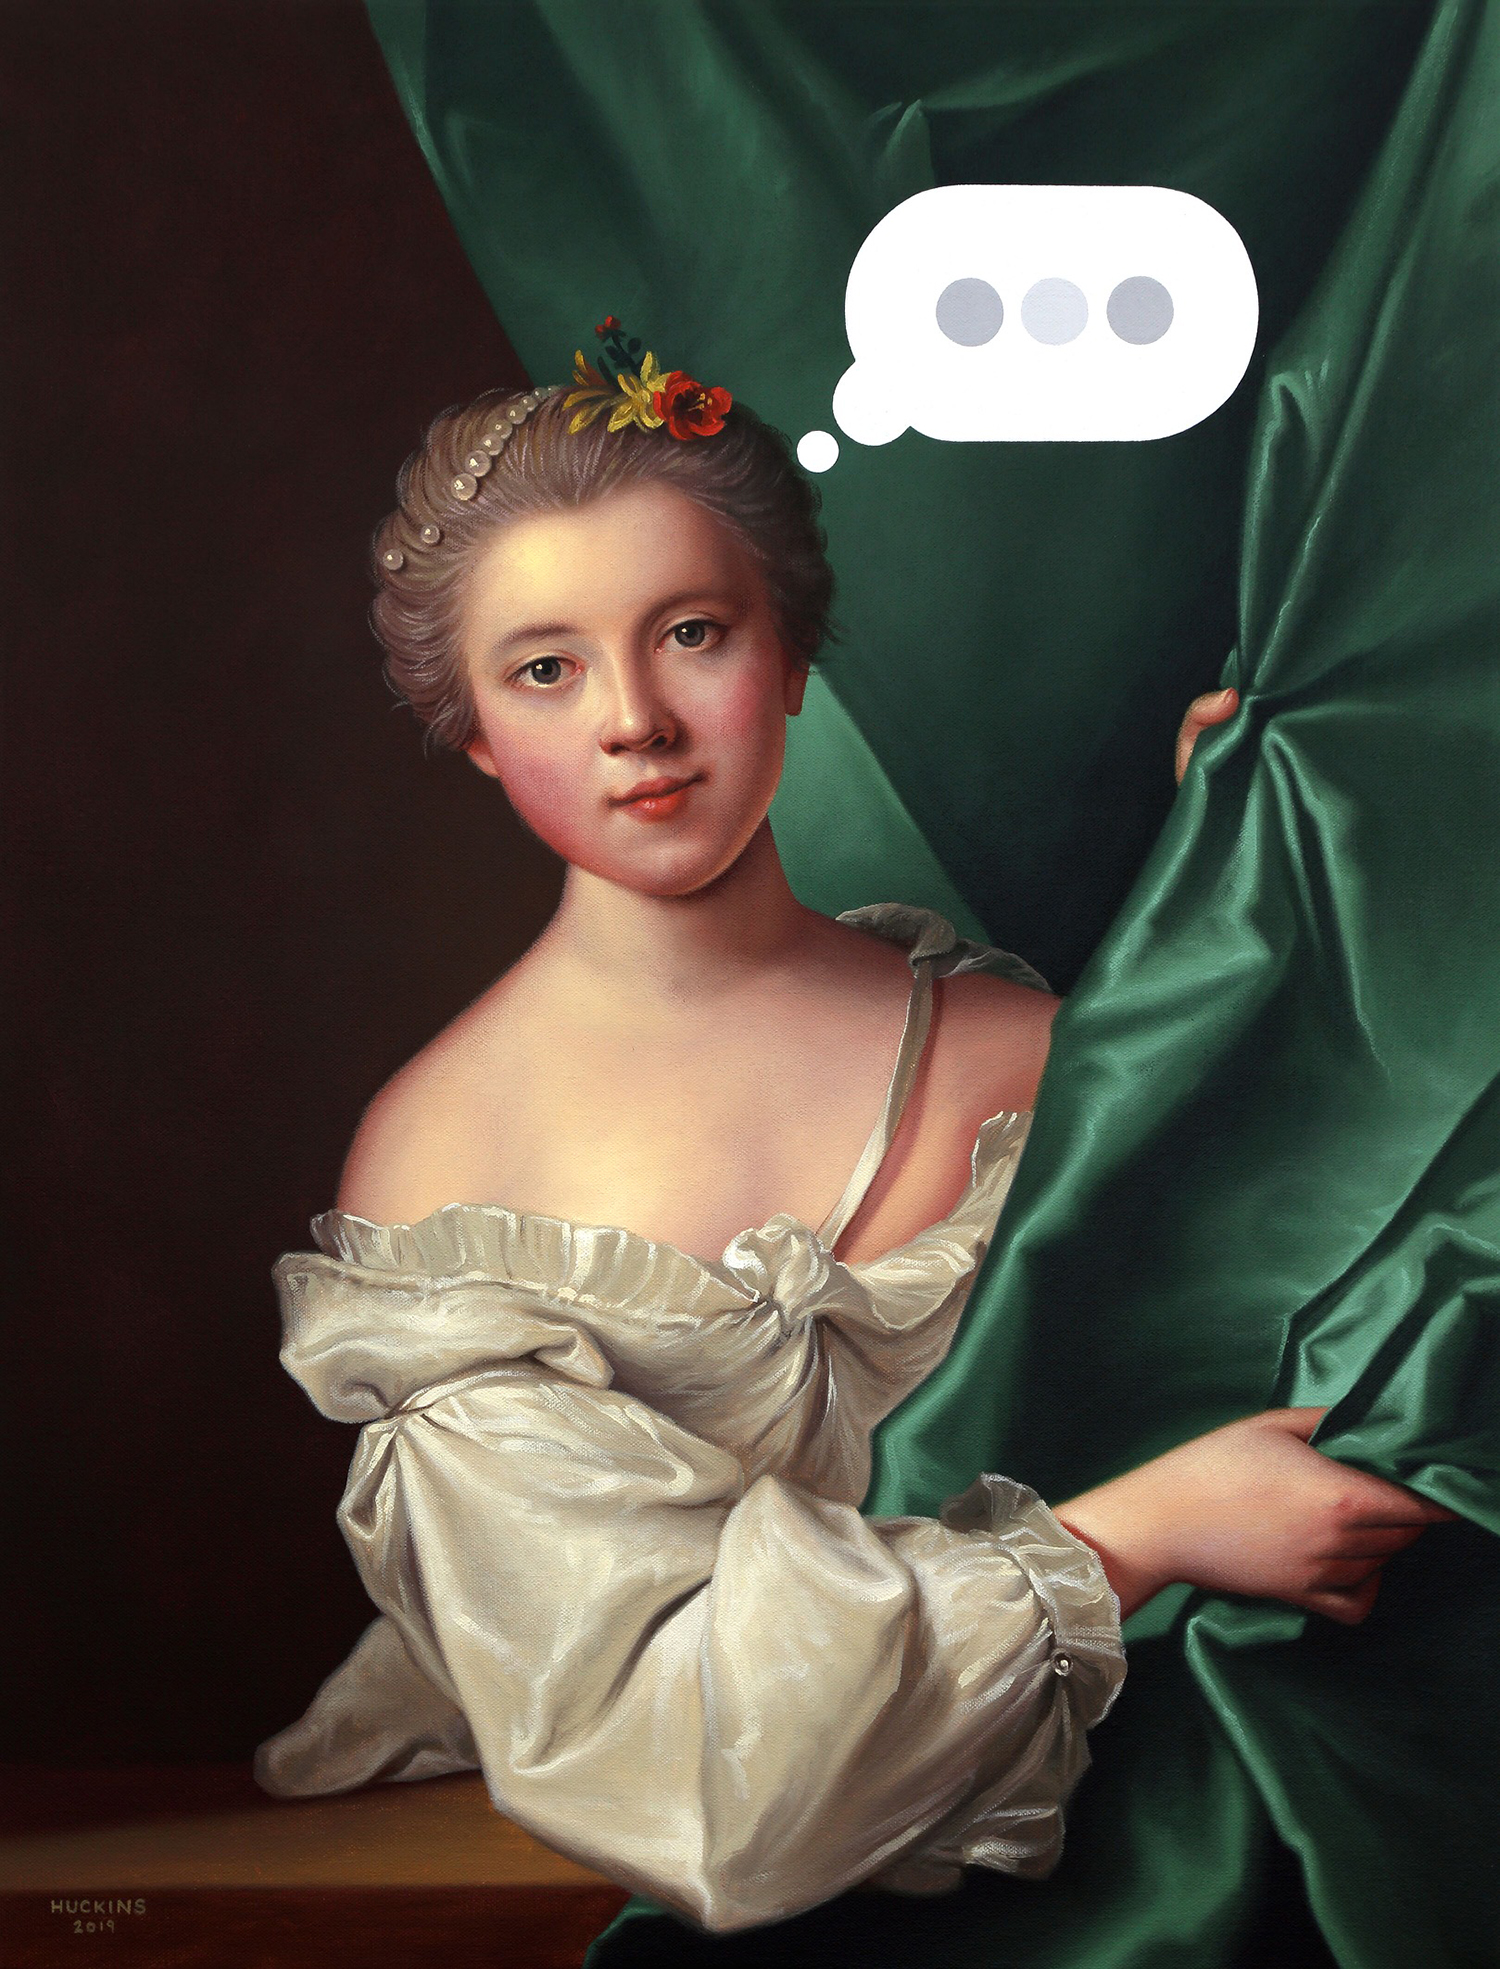 portrait-of-eleonore-louise-le-gendre-de-berville-panic-six-text-bubble-2019